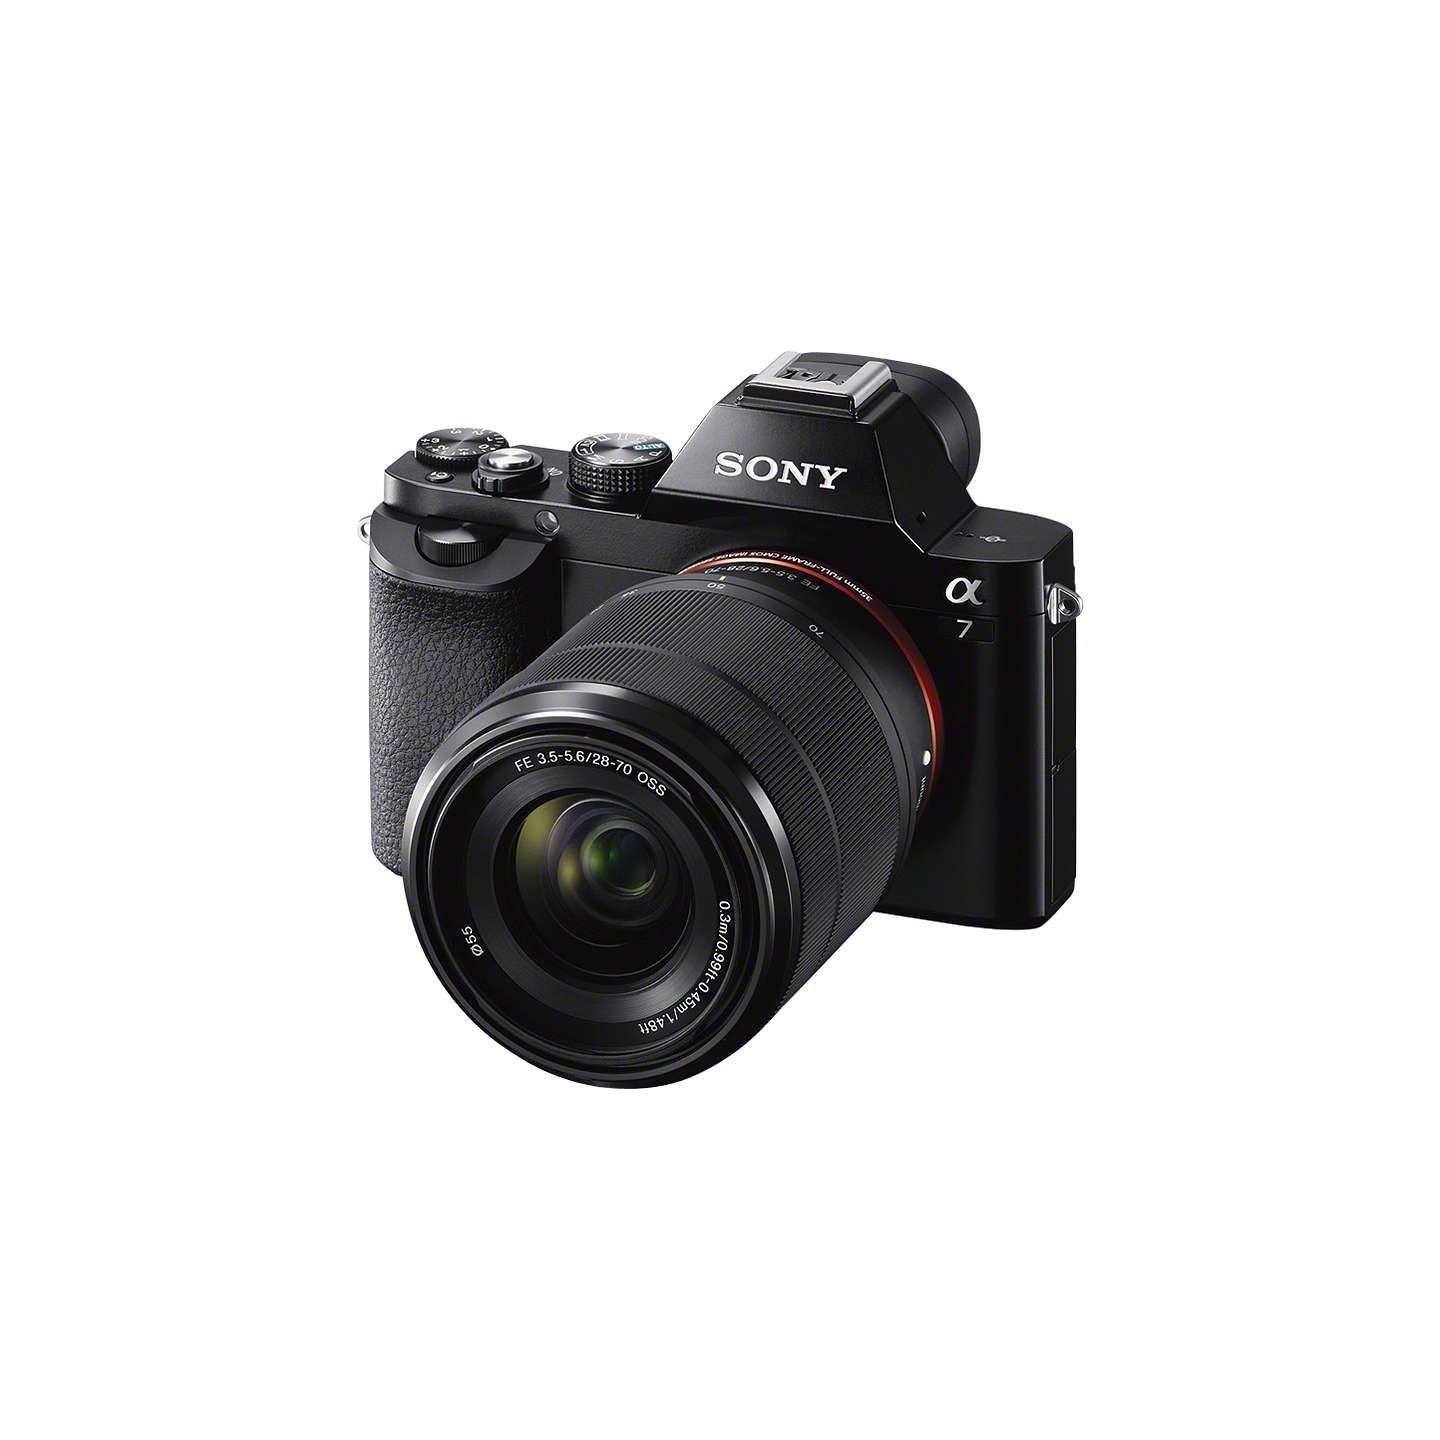 "BuySony Alpha A7 (ILCE-7K) Compact System Camera with 28-70mm Lens, HD 1080p, 24.3MP, Wi-Fi, NFC, OLED EVF, 3"" Screen Online at johnlewis.com"